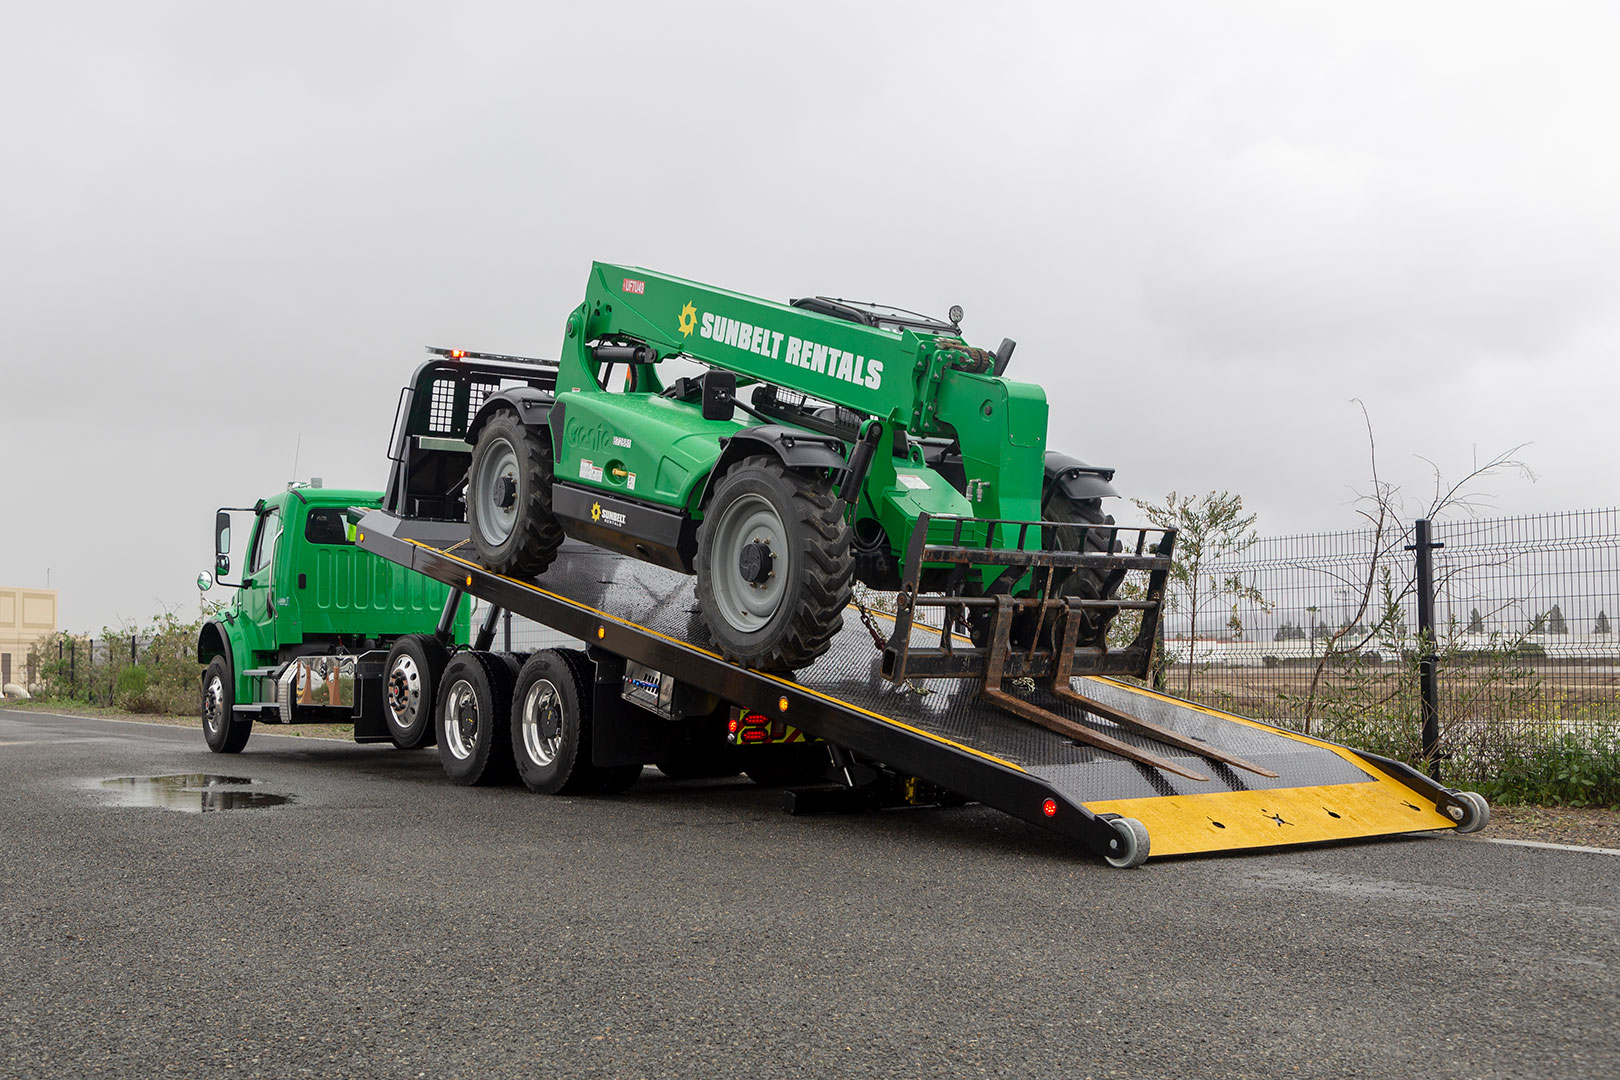 titan zla on green Freightliner m2 chassis loaded bed at angle